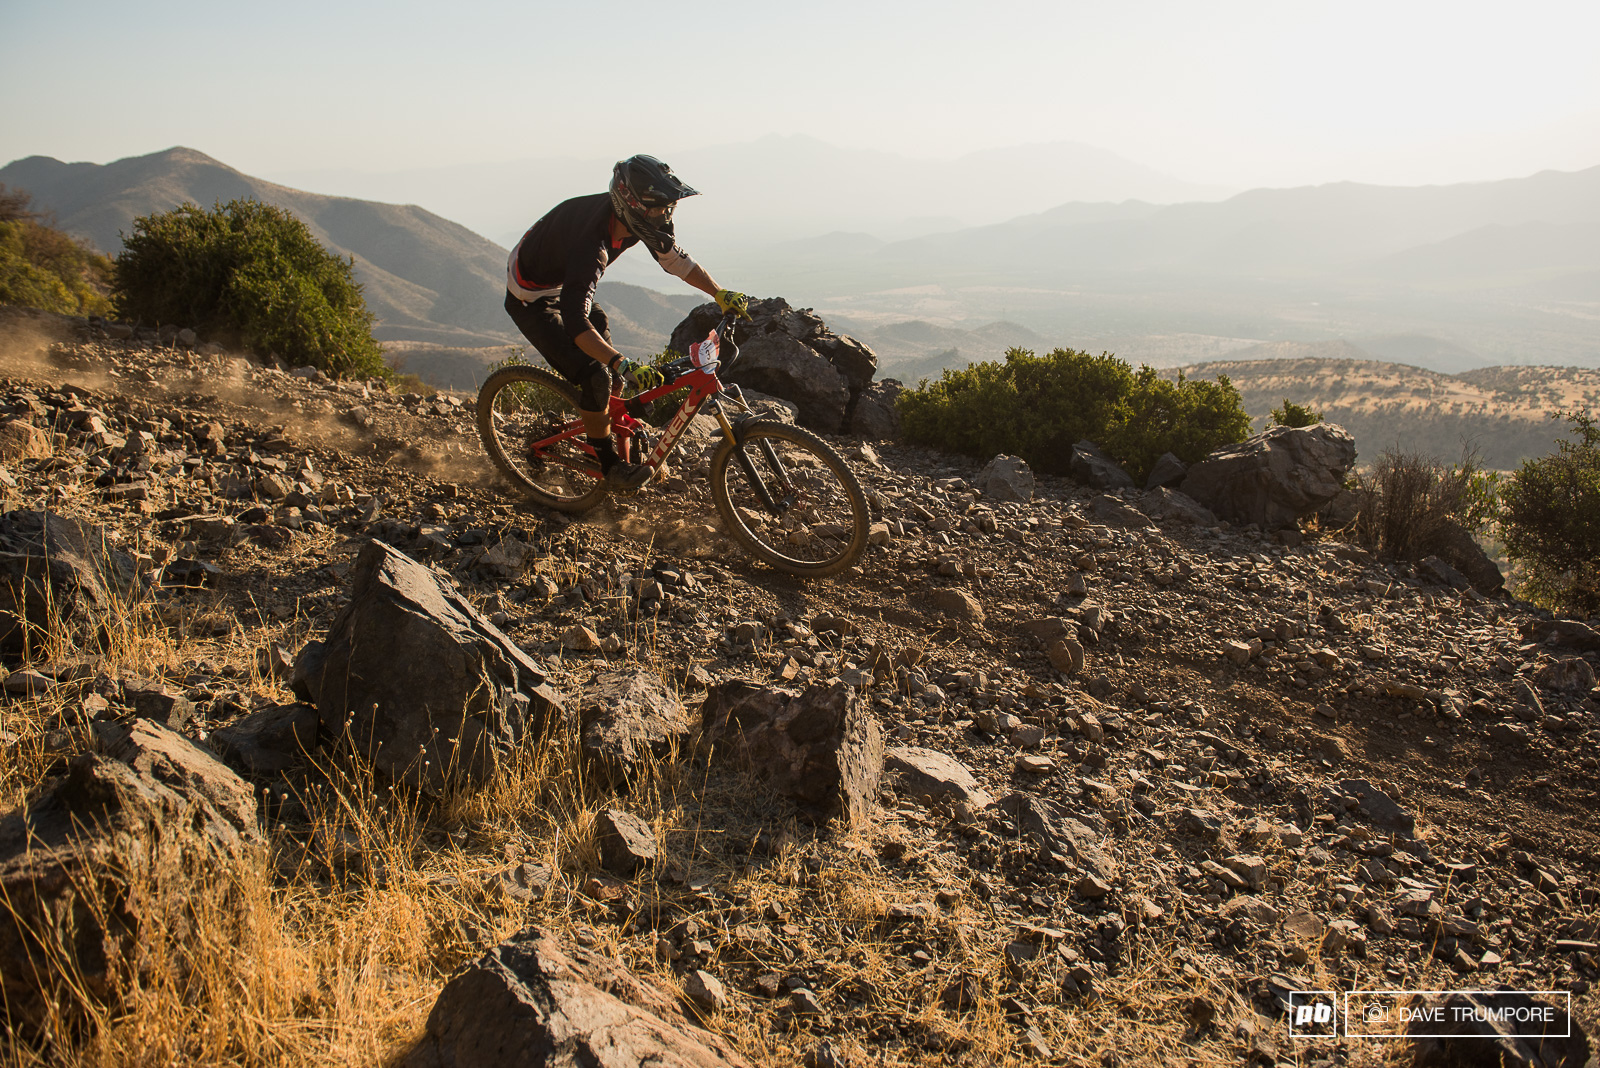 Pedro Burns navigates the lose rocks on the final stage of Day 3.